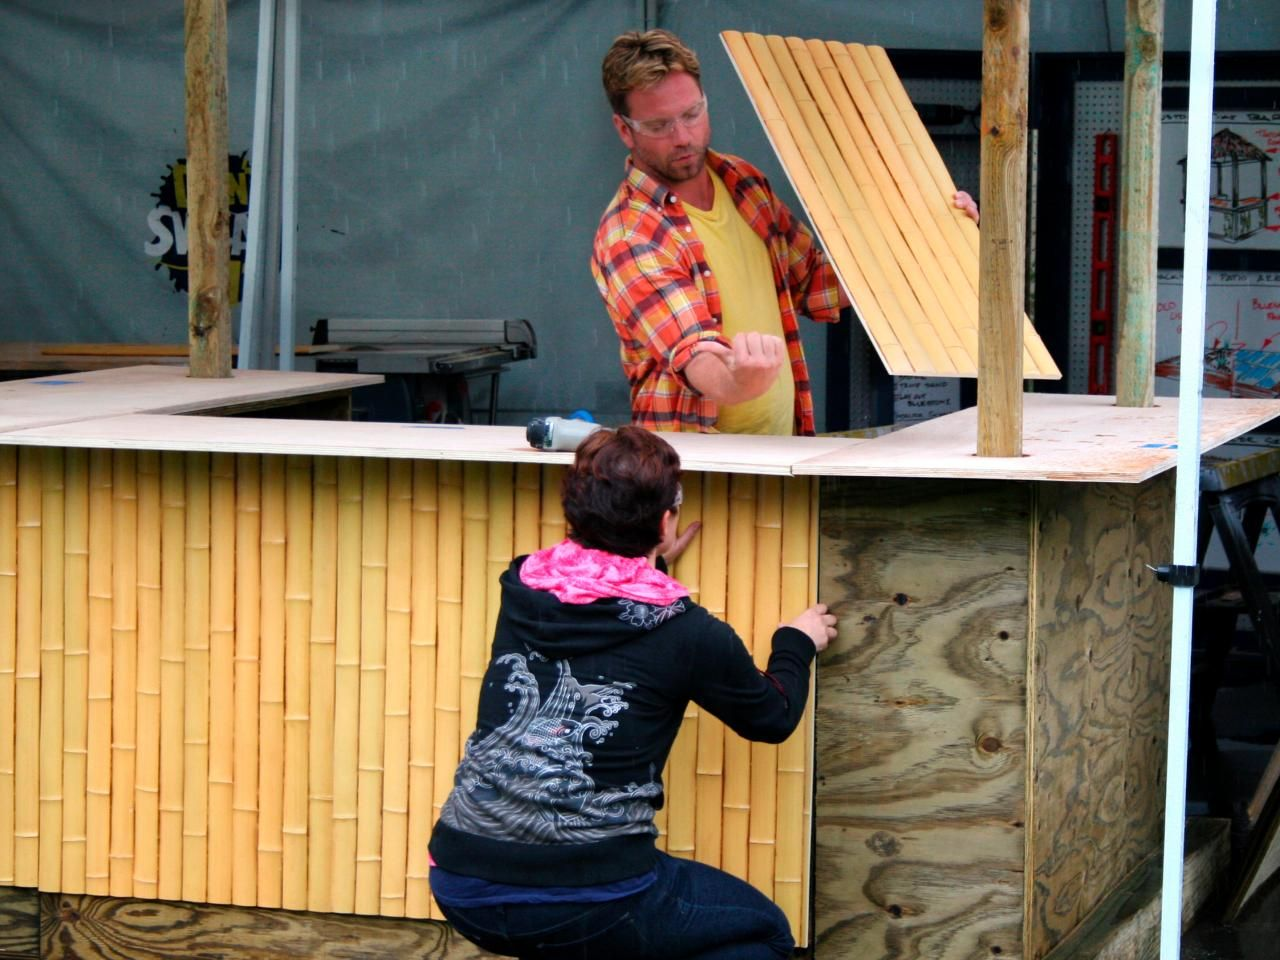 HGTV Takes Outdoor Entertaining To New Heights By Building A Three Sided  Tiki Bar With Bamboo Accents And A Grass Roof.